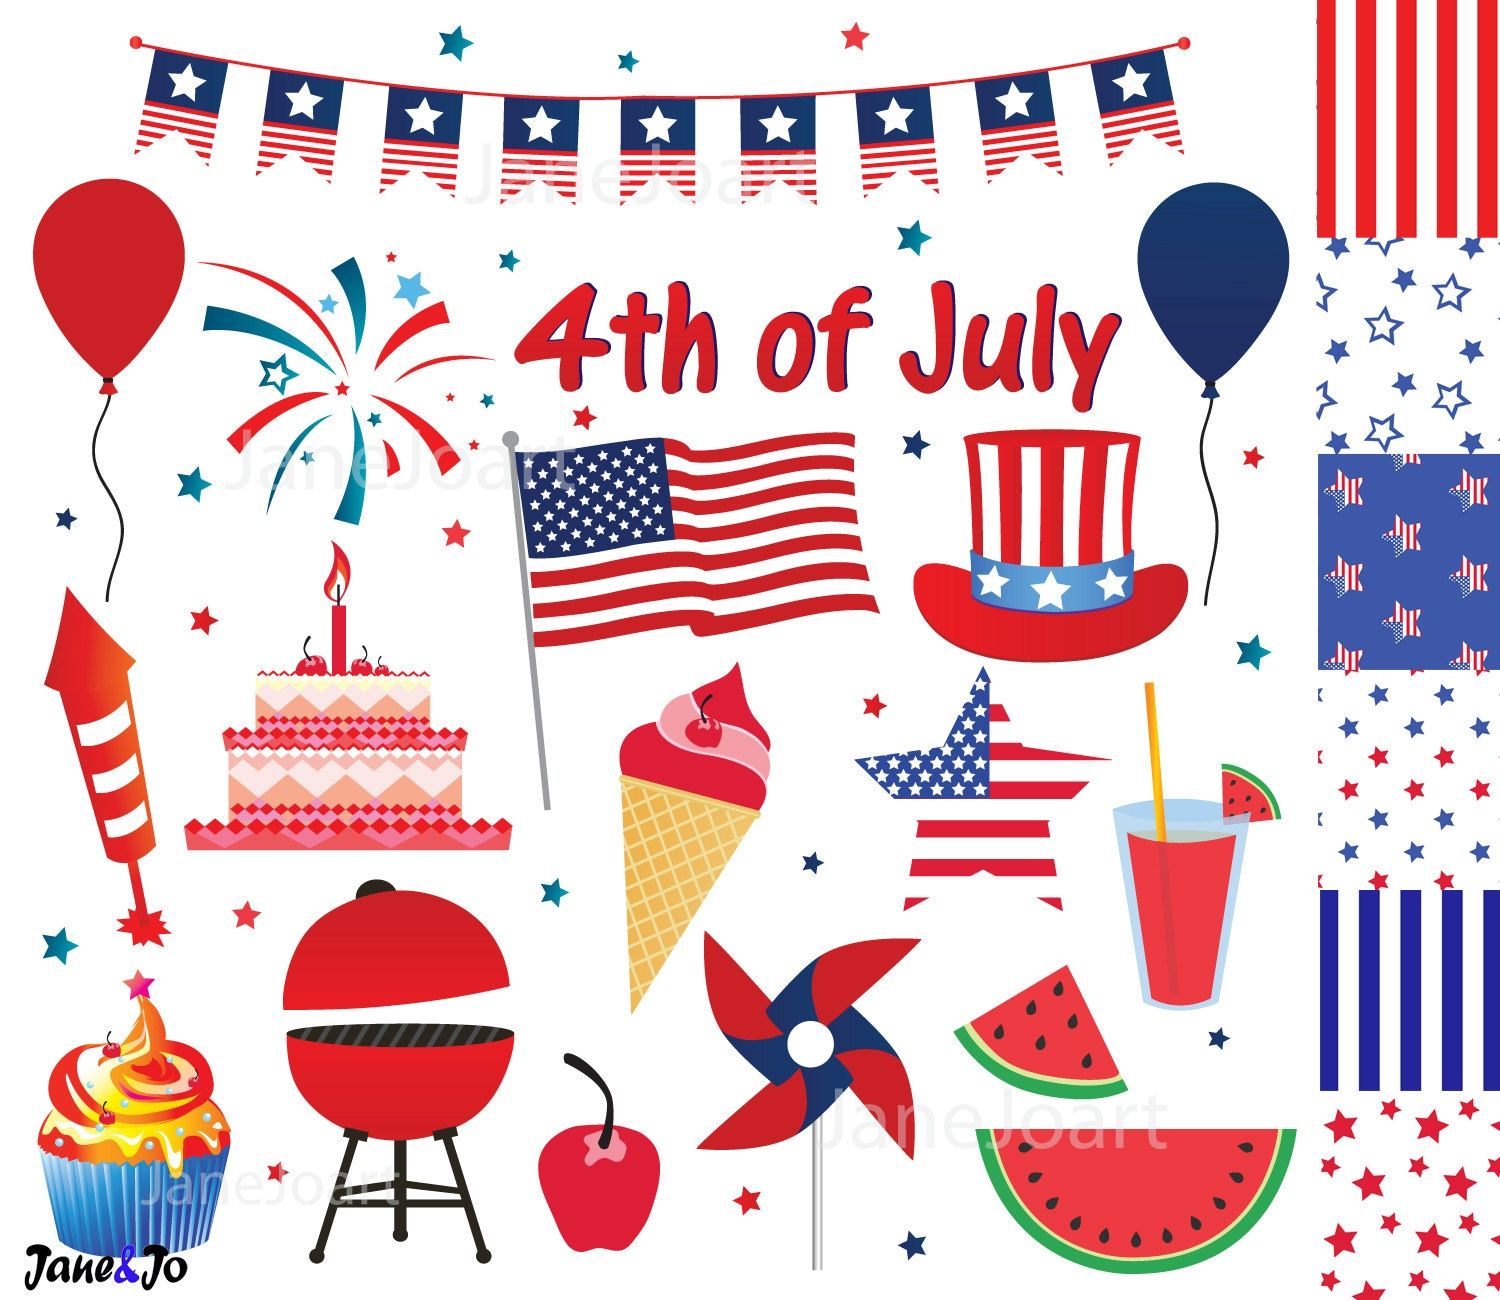 4th of July clipart Fourth of July clip art Independence ...